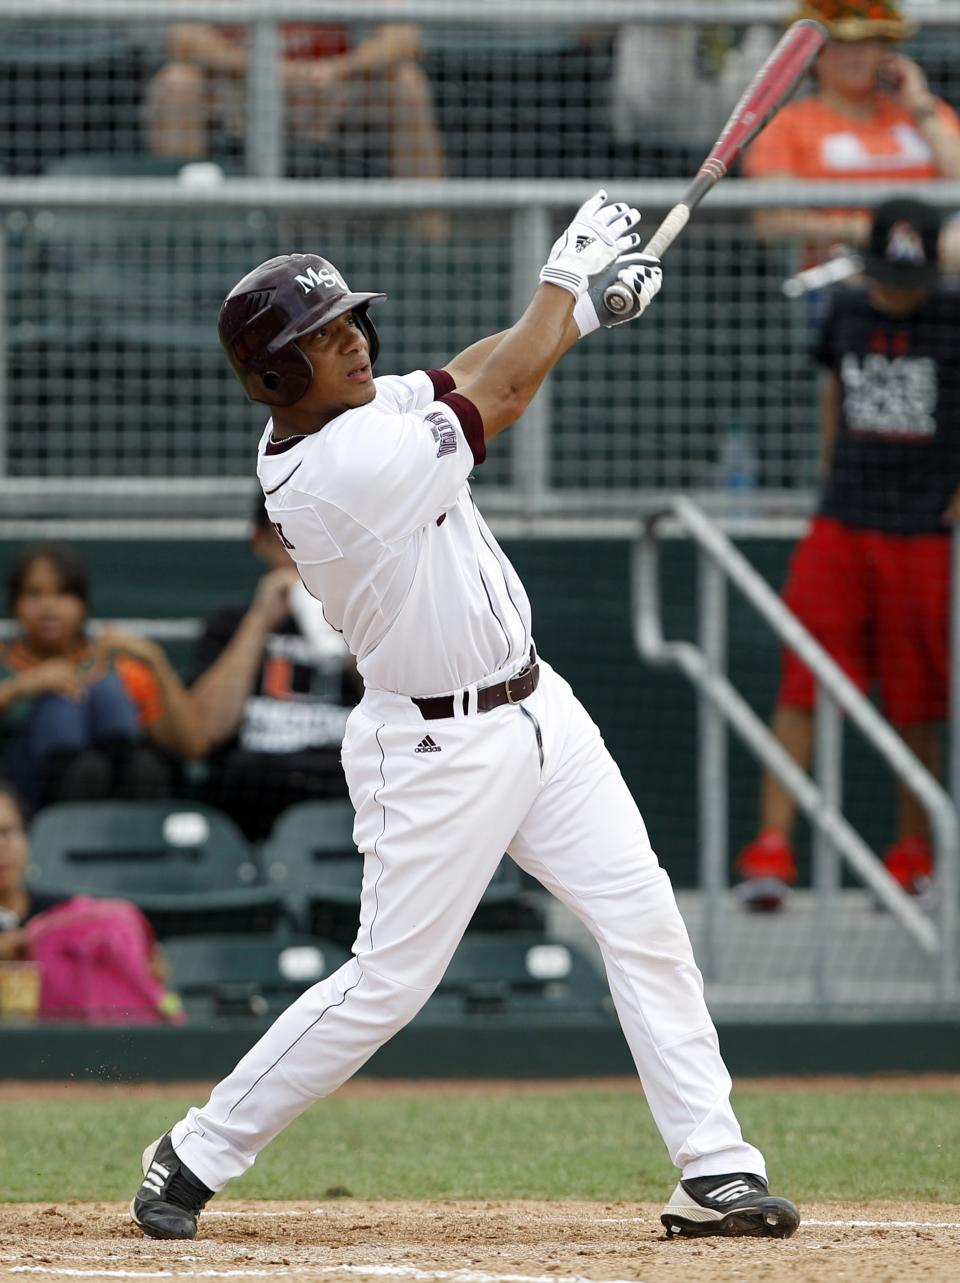 Missouri State's Keenen Maddox watches after hitting a double to score Brent Seifert in the second inning during an NCAA college baseball tournament regional game against Miami, Saturday, June 2, 2012, in Coral Gables, Fla. (AP Photo/Lynne Sladky)